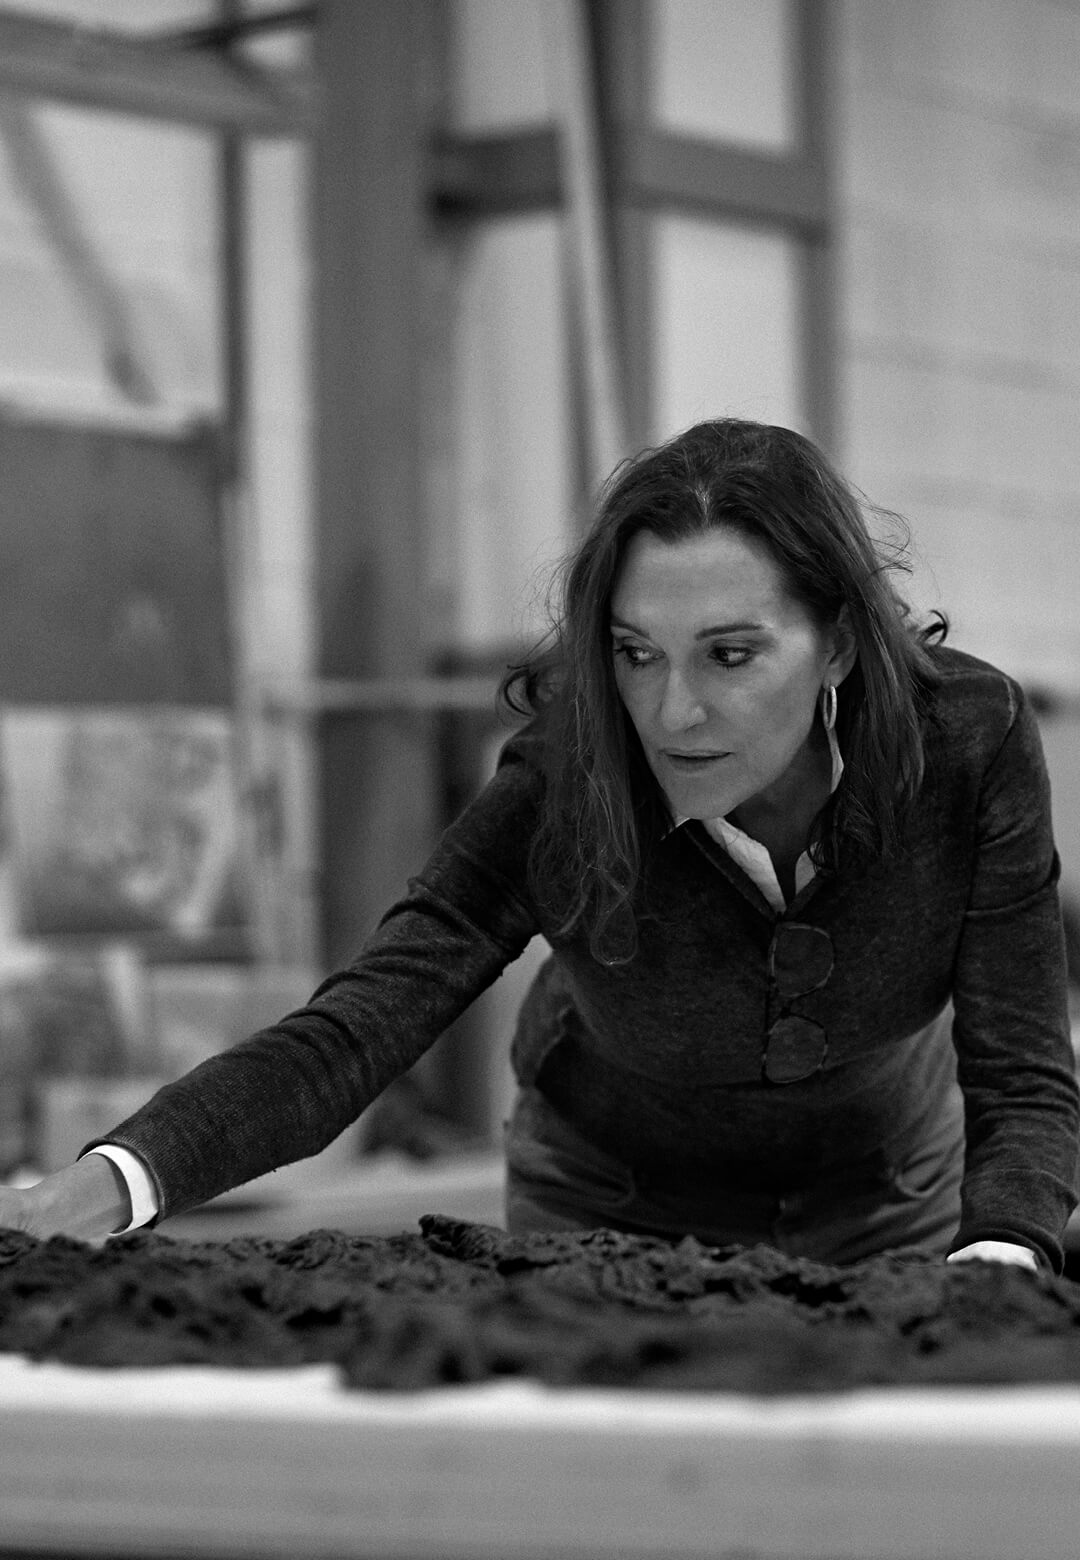 Madrid-based installation artist and sculptor Cristina Iglesias | Royal Academy Architecture Prize 2020 | STIRworld